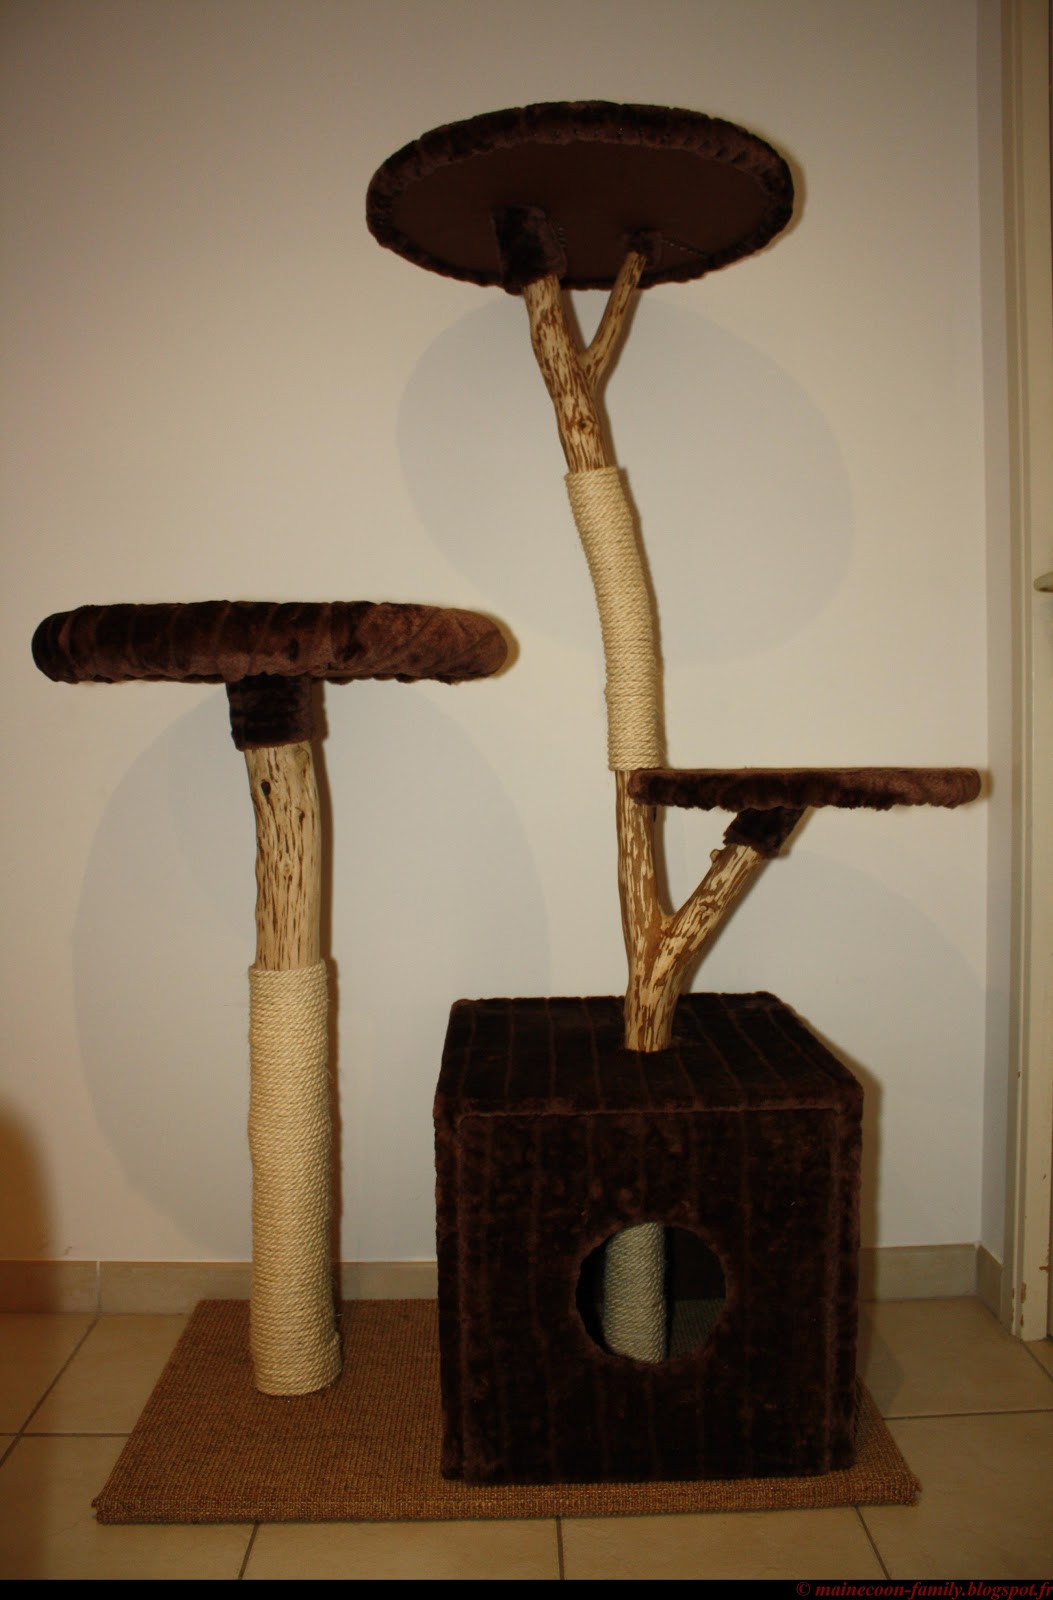 Vends arbre chat en bois naturel - Arbre a chat en bois naturel ...